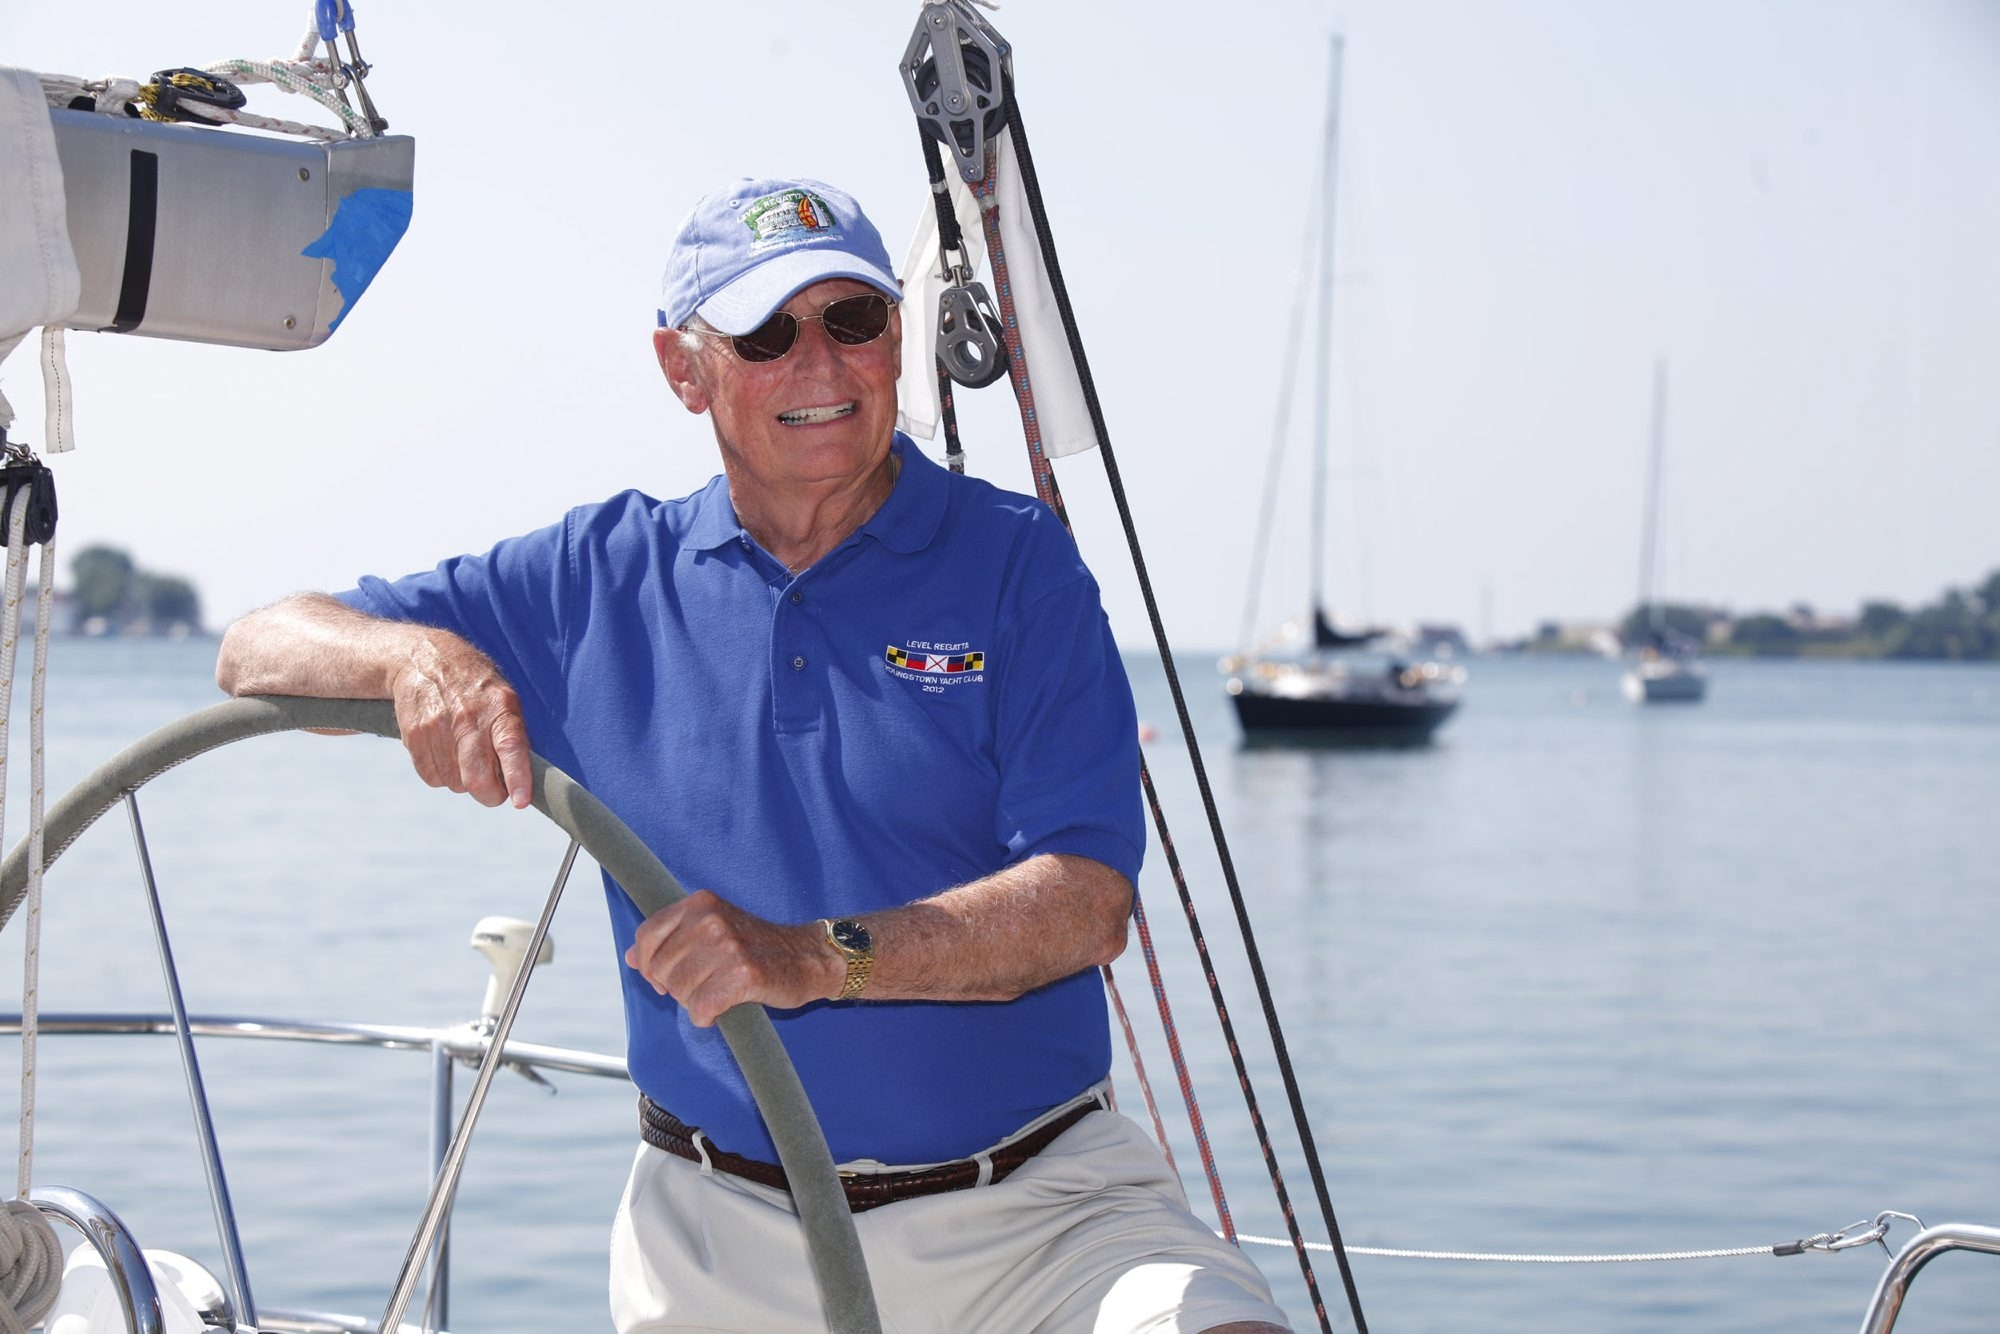 Regatta chairman Patrick Mackey expects more than 200 boats on the line at the Youngstown Yacht Club's 40th, and final, Level Regatta next weekend.